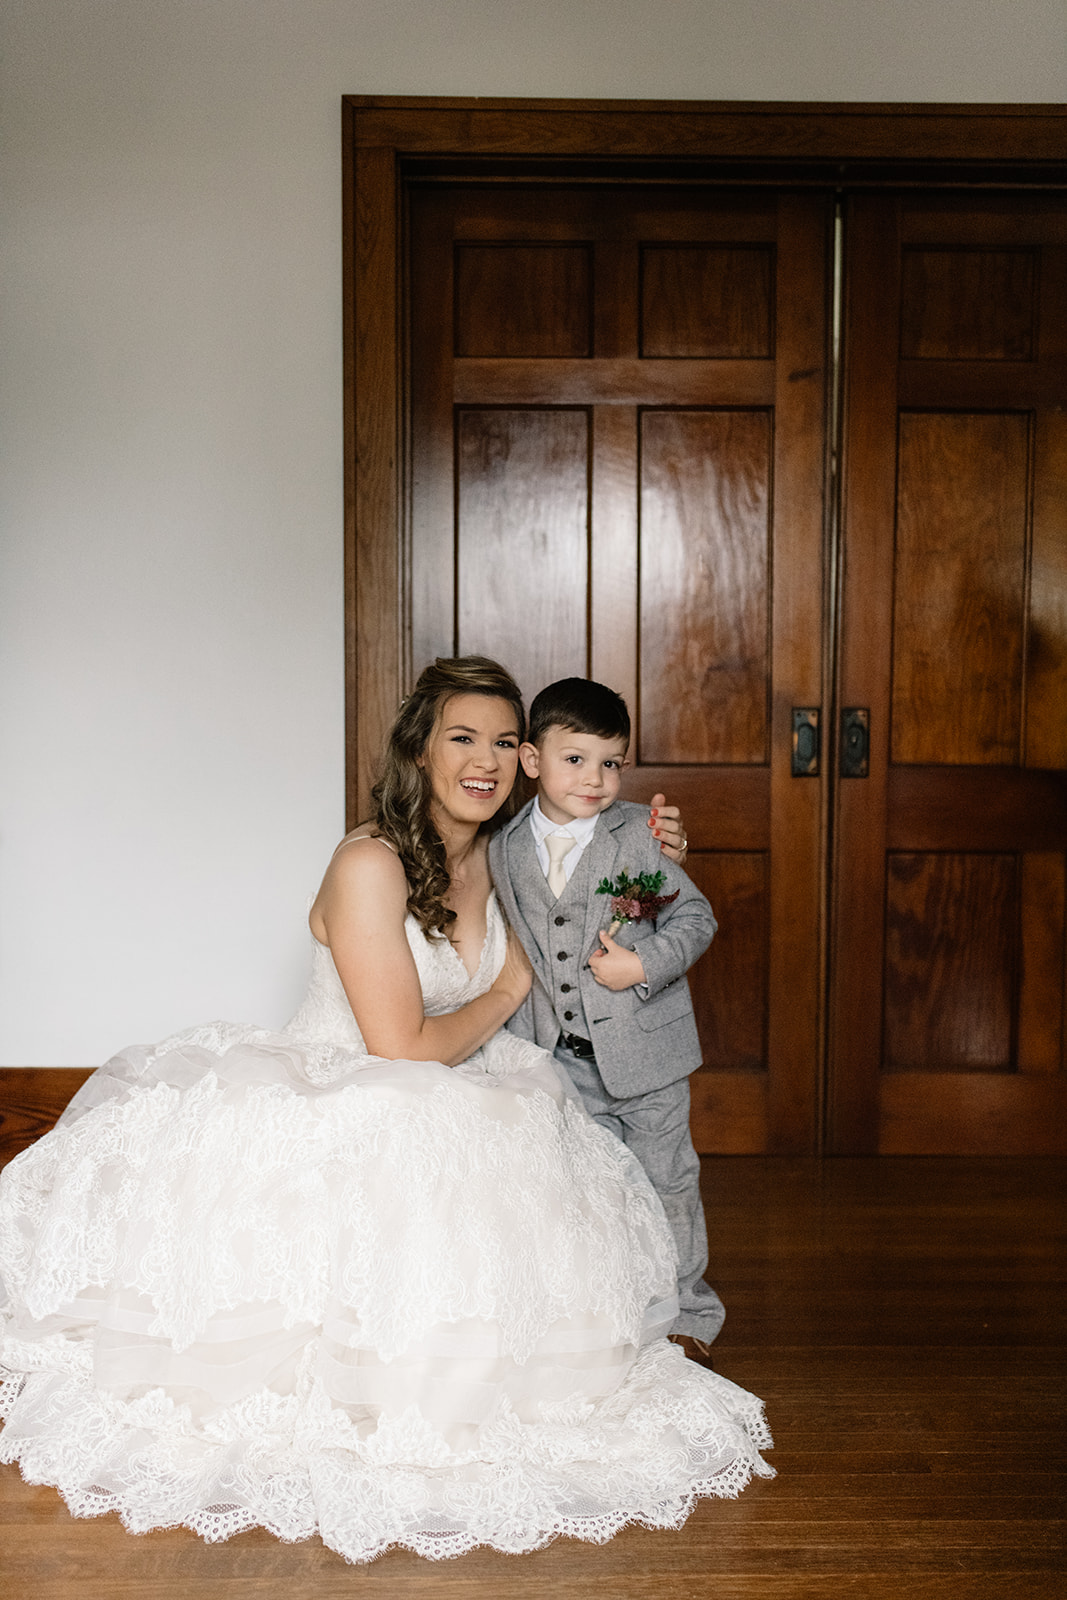 bride and ring bearer wellman iowa wedding